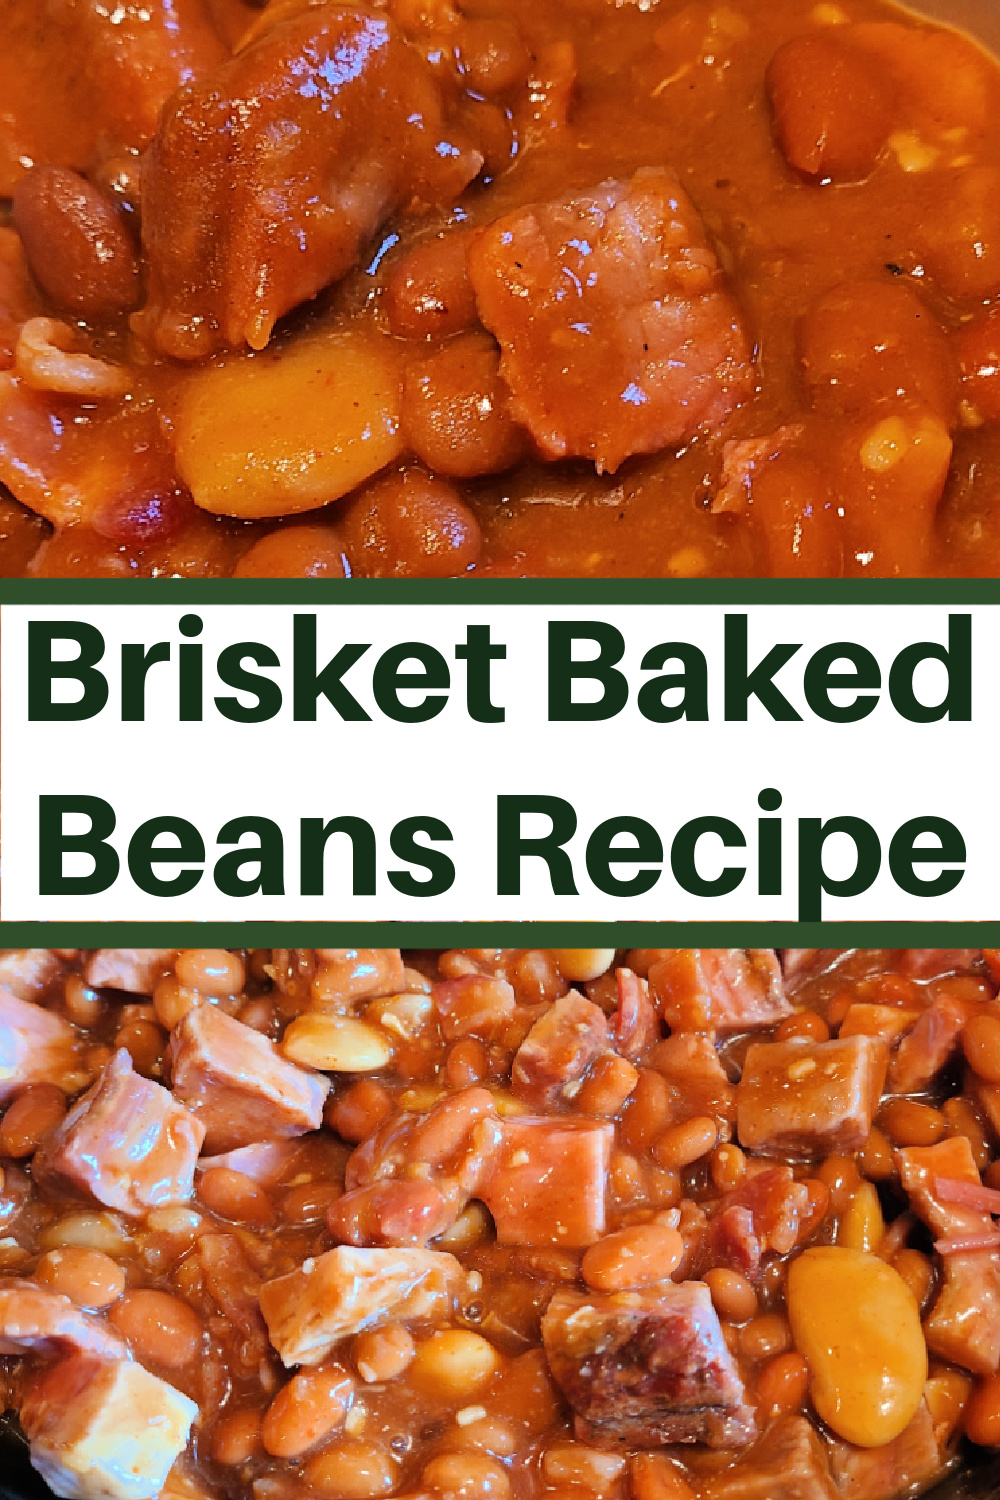 This Smoked Brisket Baked Beans Recipe is the perfect way to use up leftover smoked brisket! These beans can make an easy dinner or a tasty smoked side dish! A dutch oven brings out all the flavor with the cast iron.